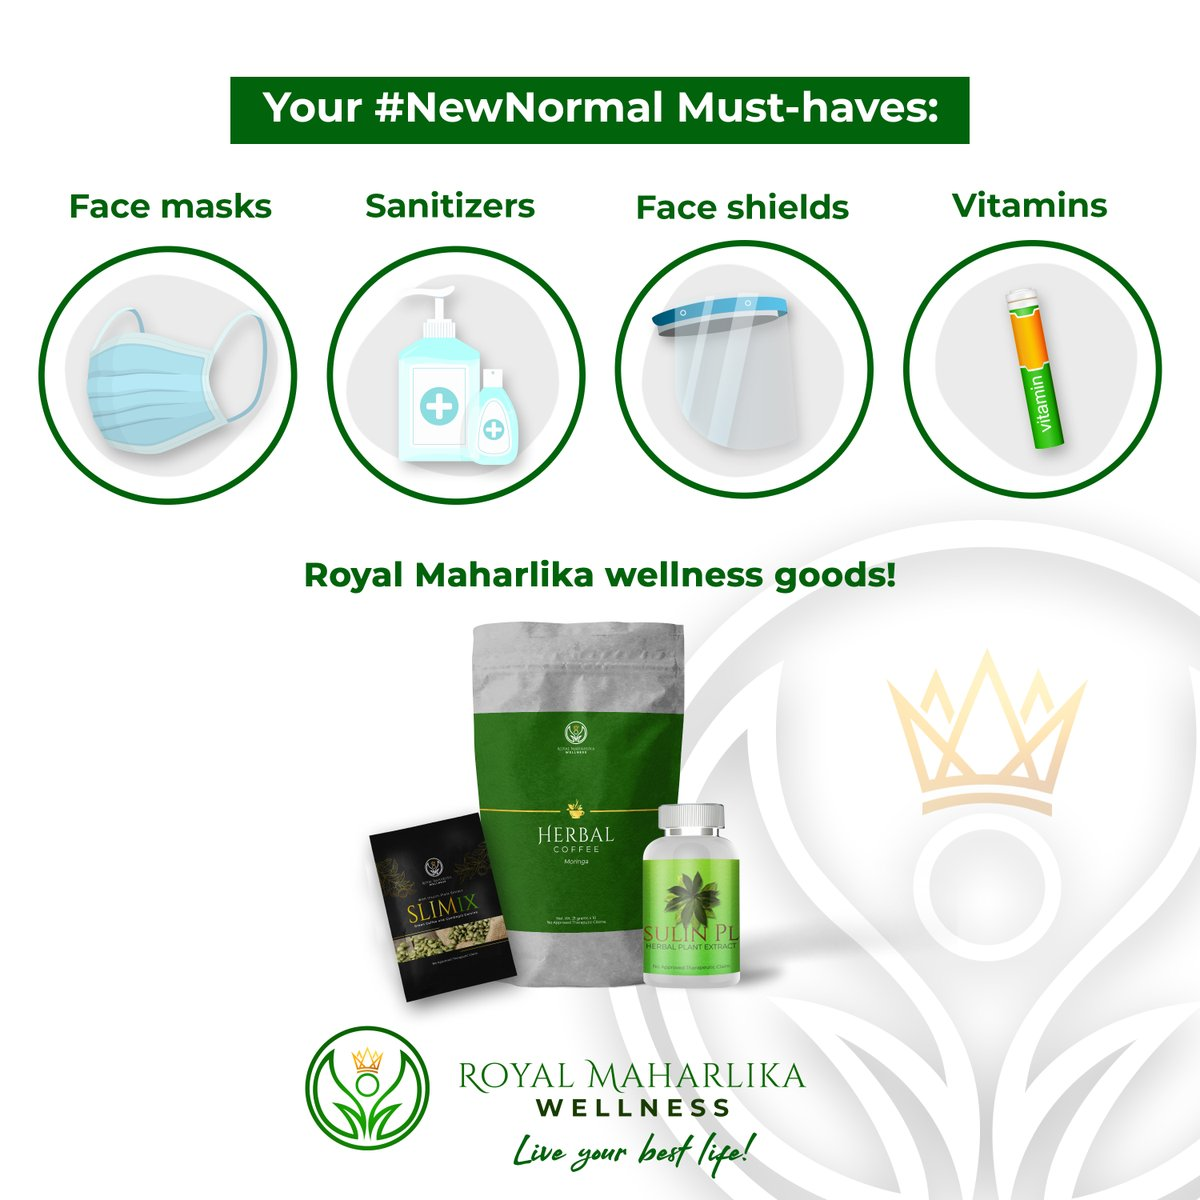 Going out for the first time in a while? Be sure you have these things with you and stay protected! #RoyalMaharlika #Liveyourbestlife https://t.co/fQEiaPLxUz